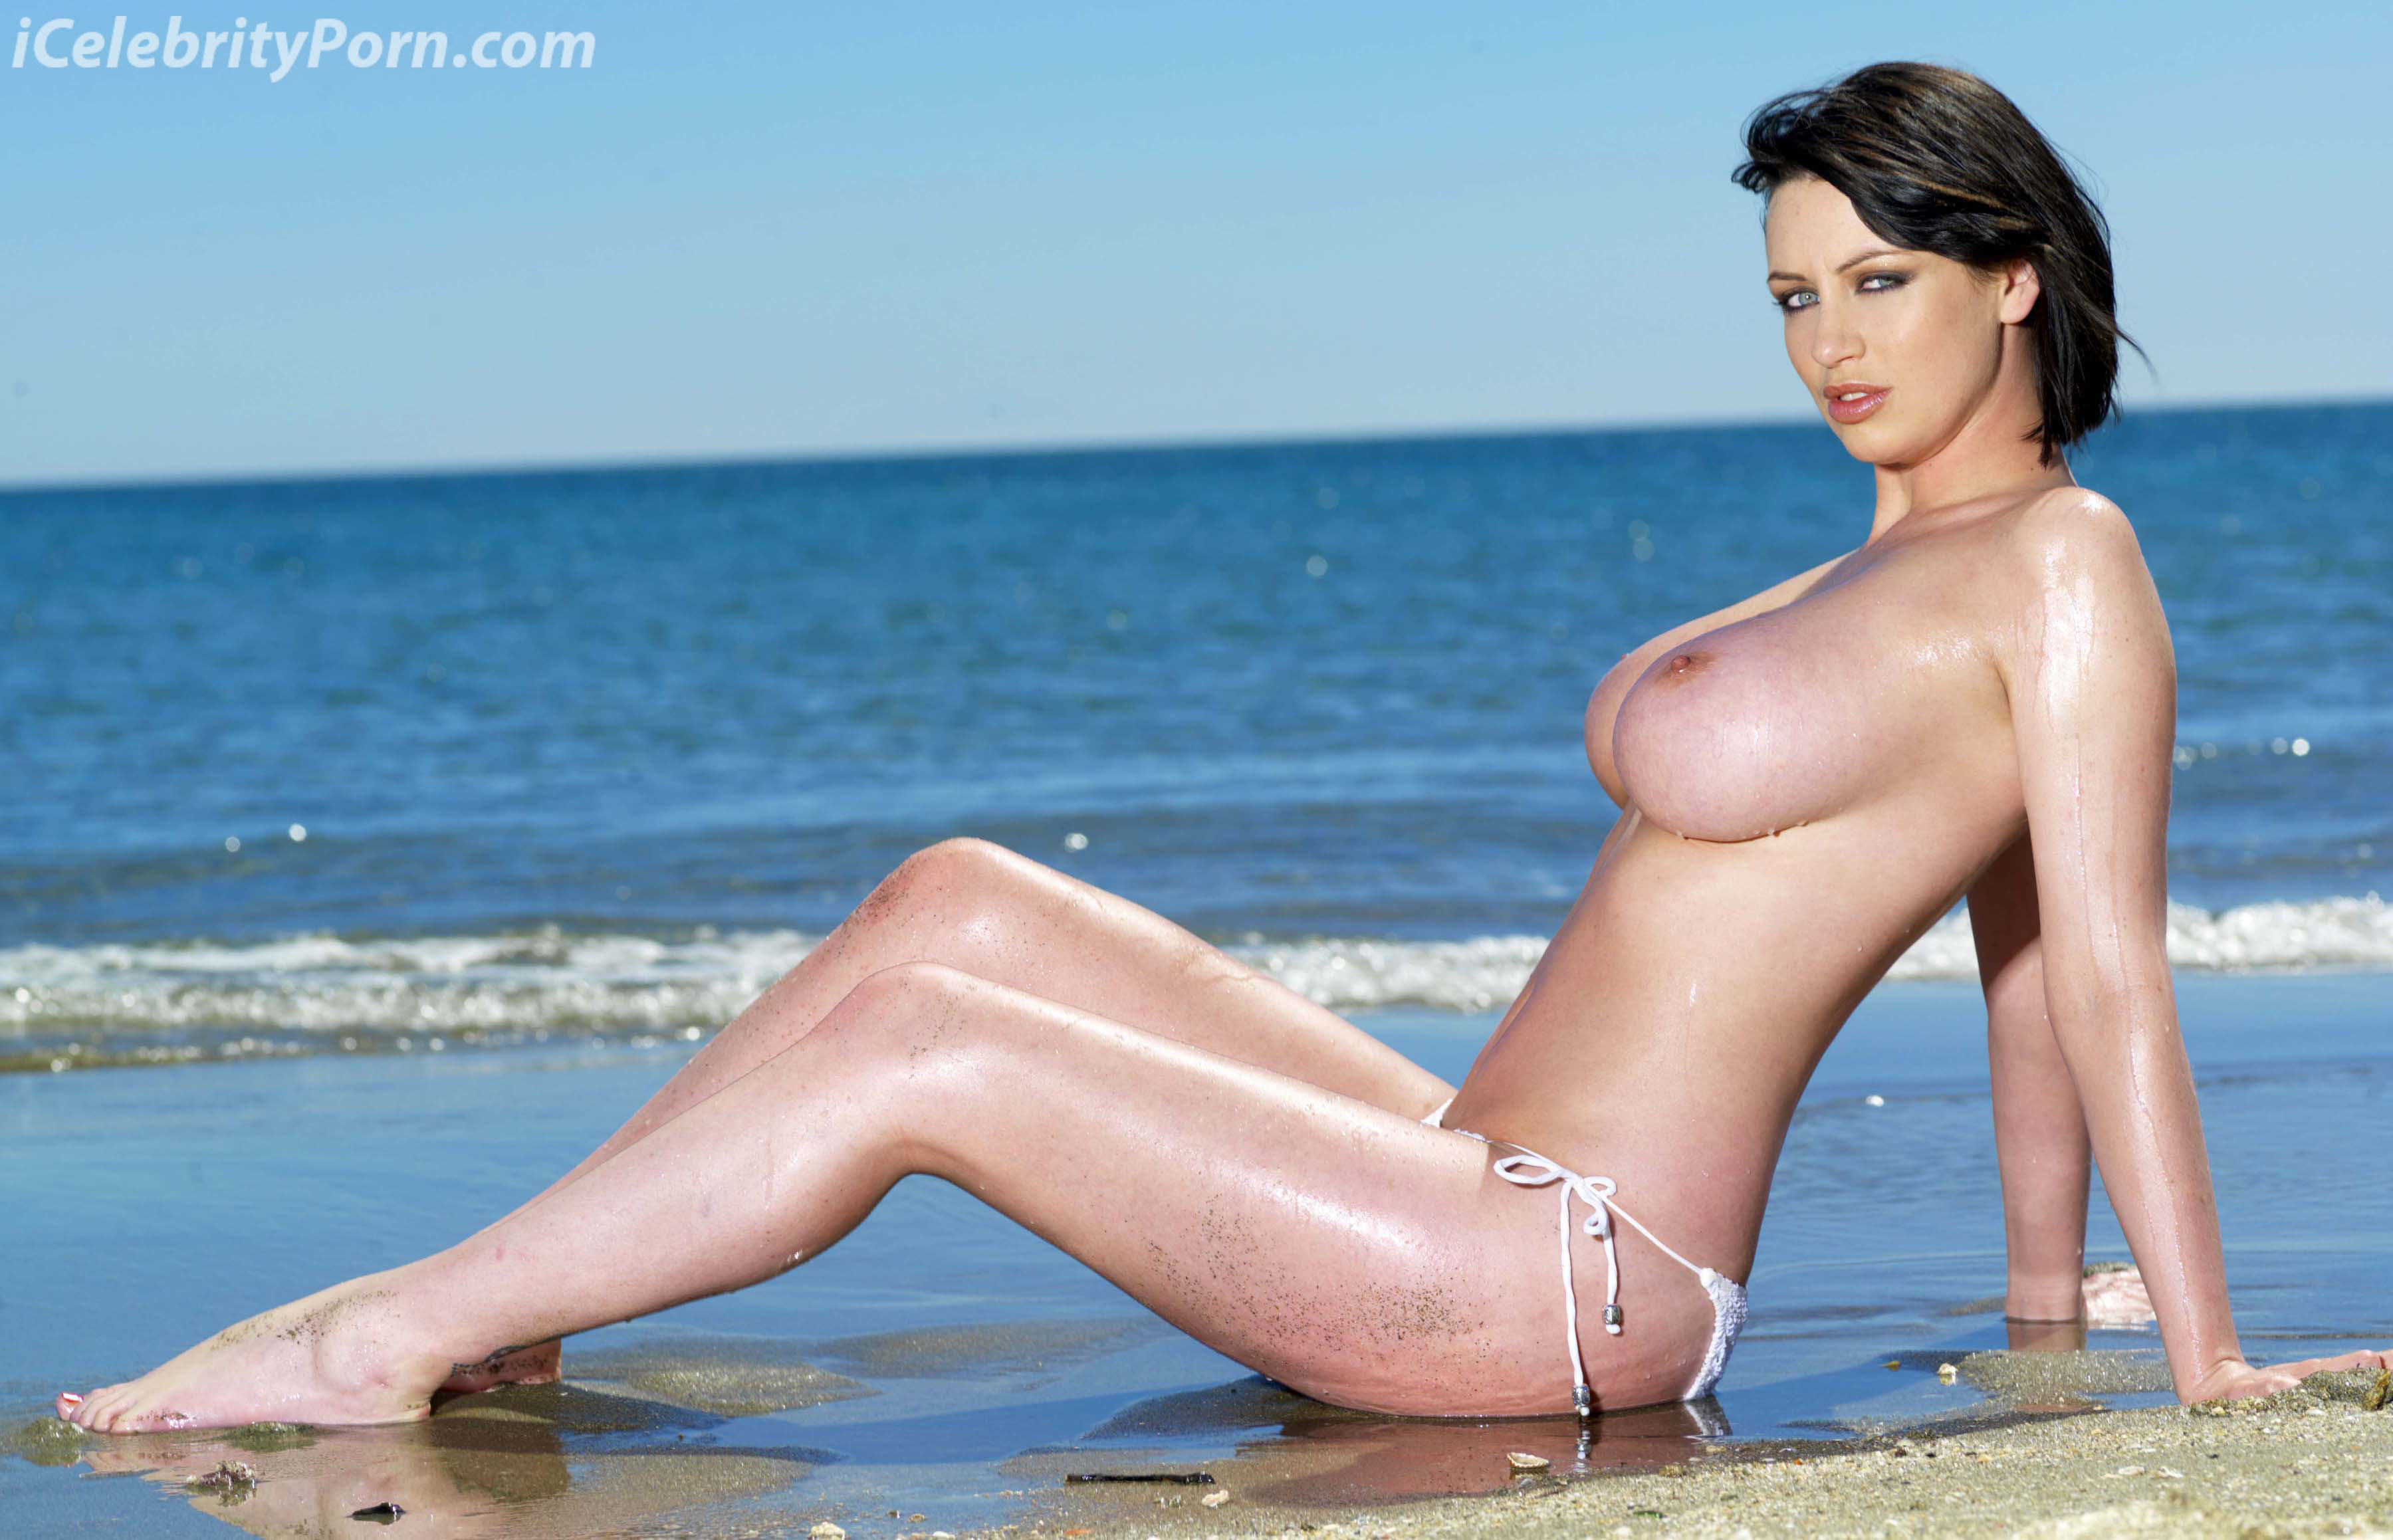 **Exclusive** Glamour girl Sophie Howard posing at the beach Spain - 15.12.08 **Available for publication in Germany, Belgium, Holland, Luxembourg, China, Japan. Not for publication in the rest of the world. No Internet Use** Credit: Popstar/WENN.com